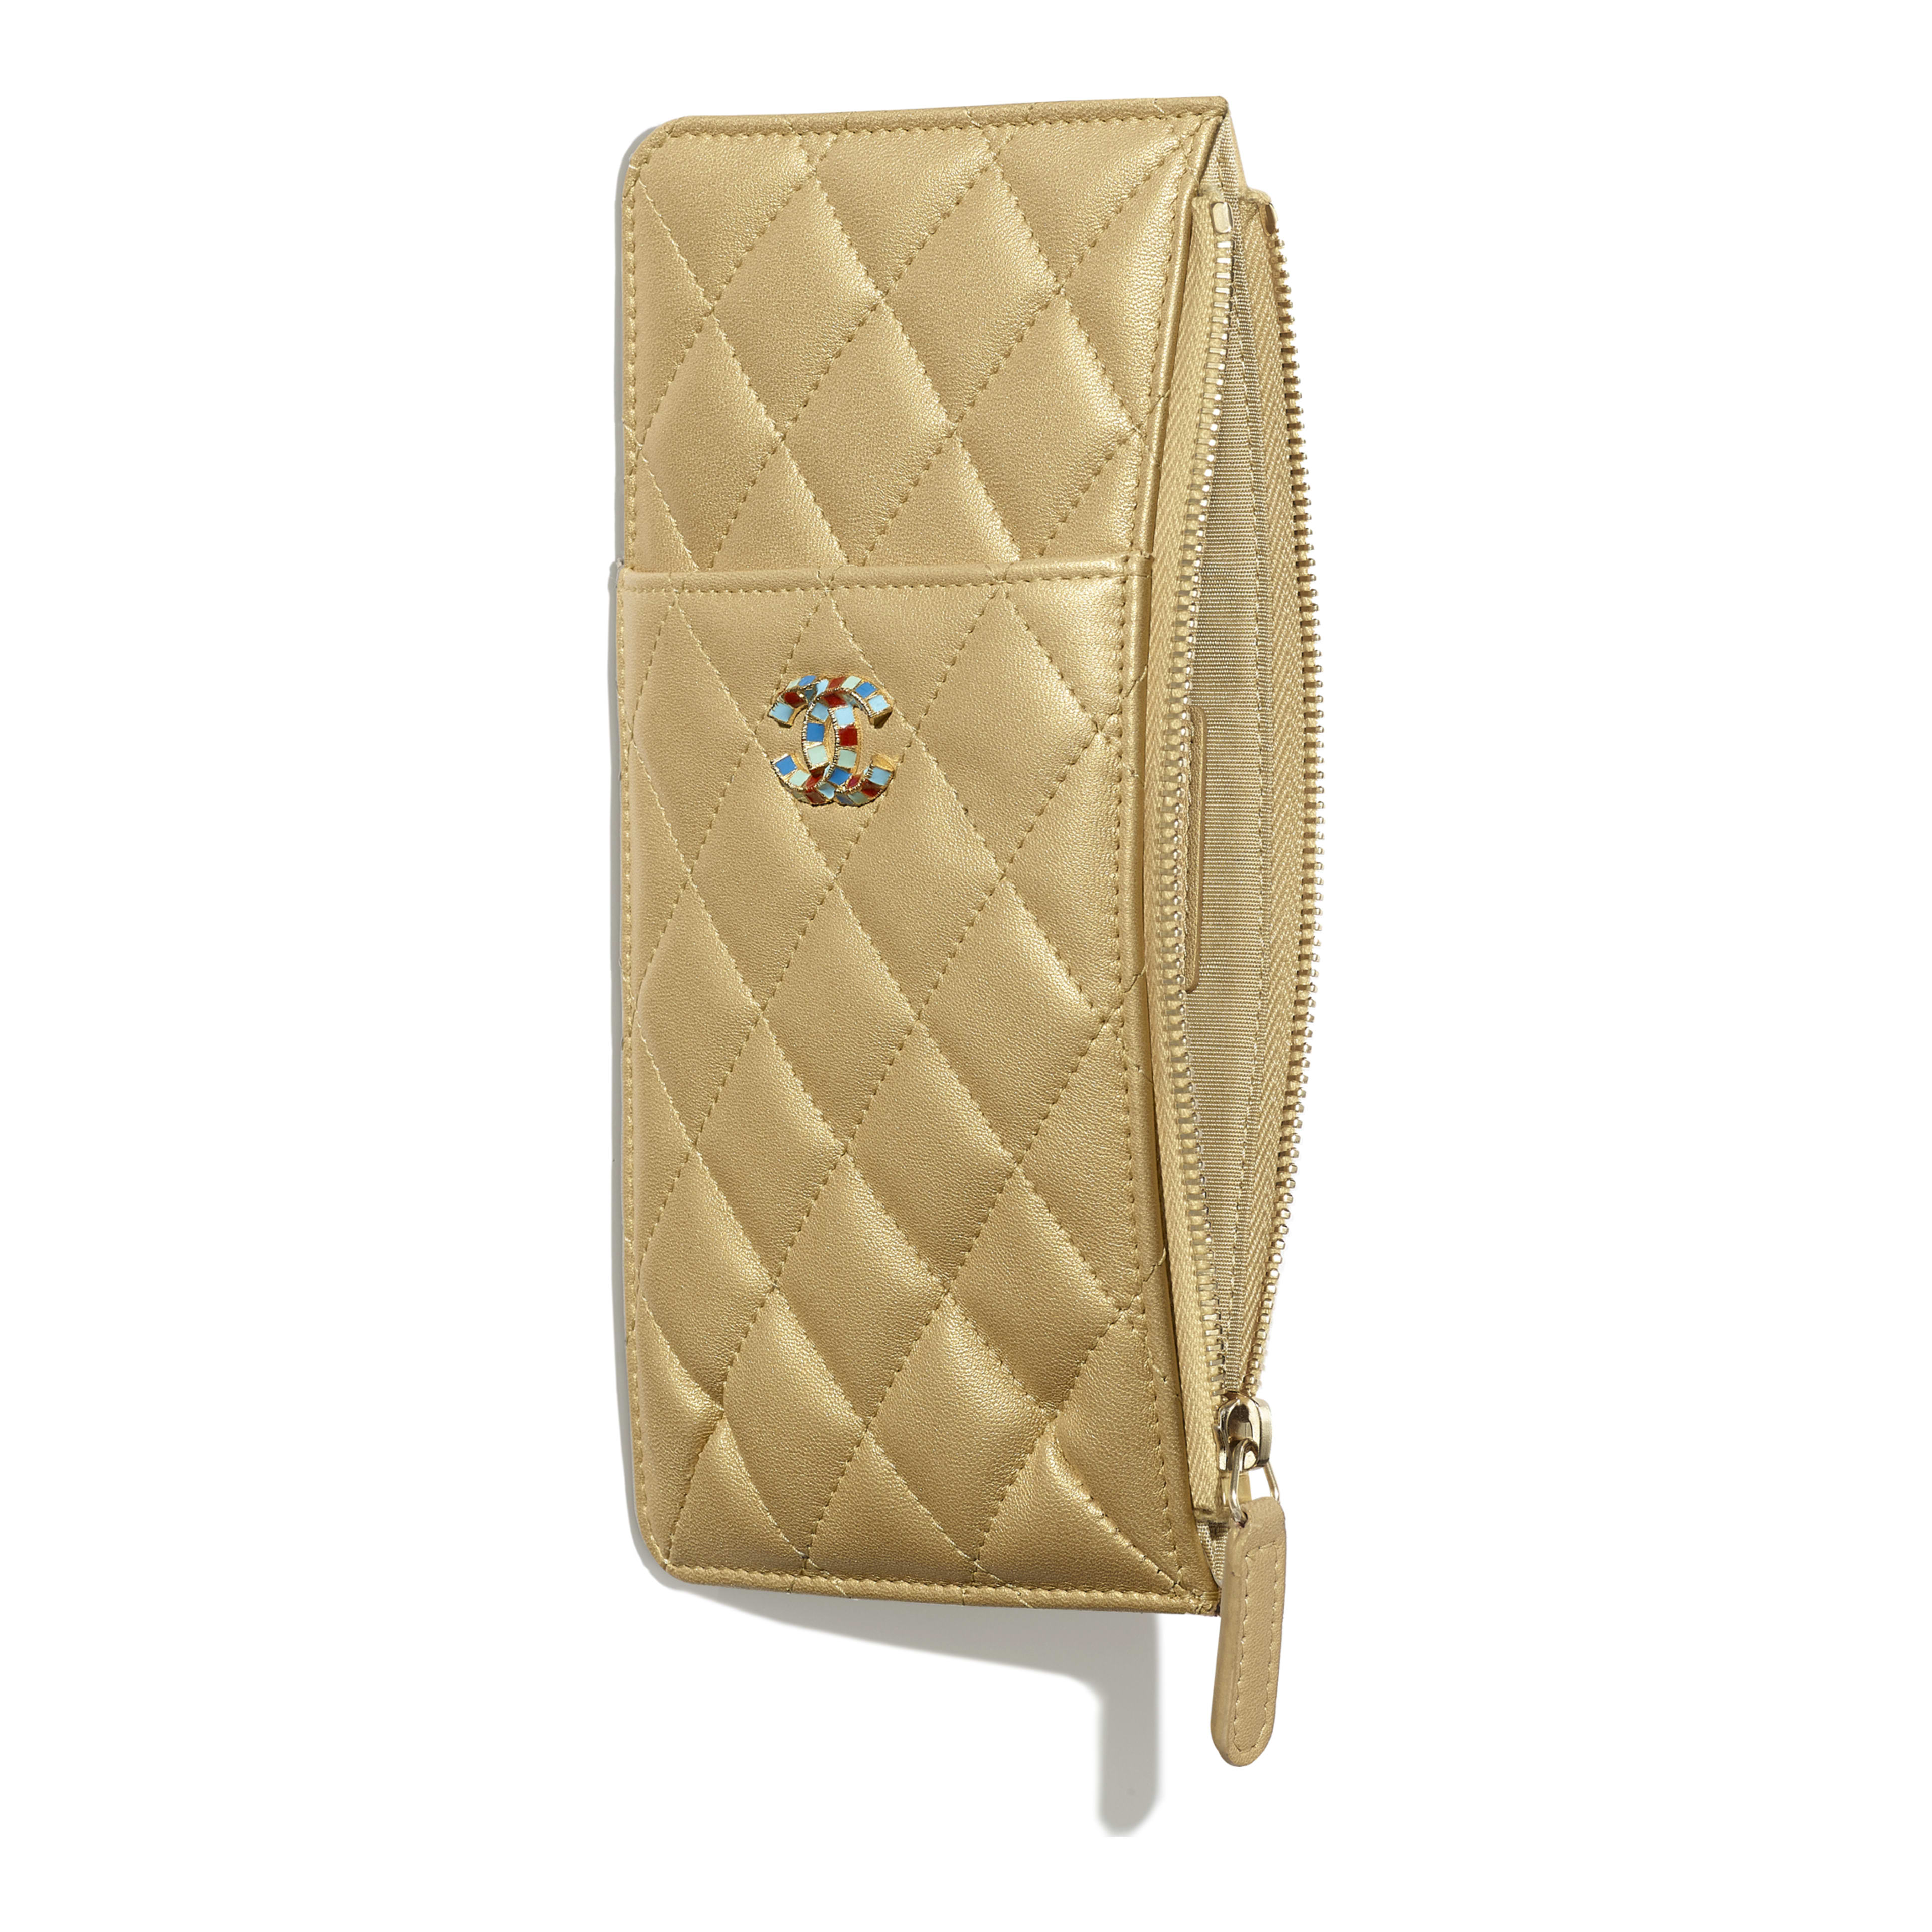 Pouch - Gold - Metallic Lambskin & Gold-Tone Metal - Other view - see full sized version